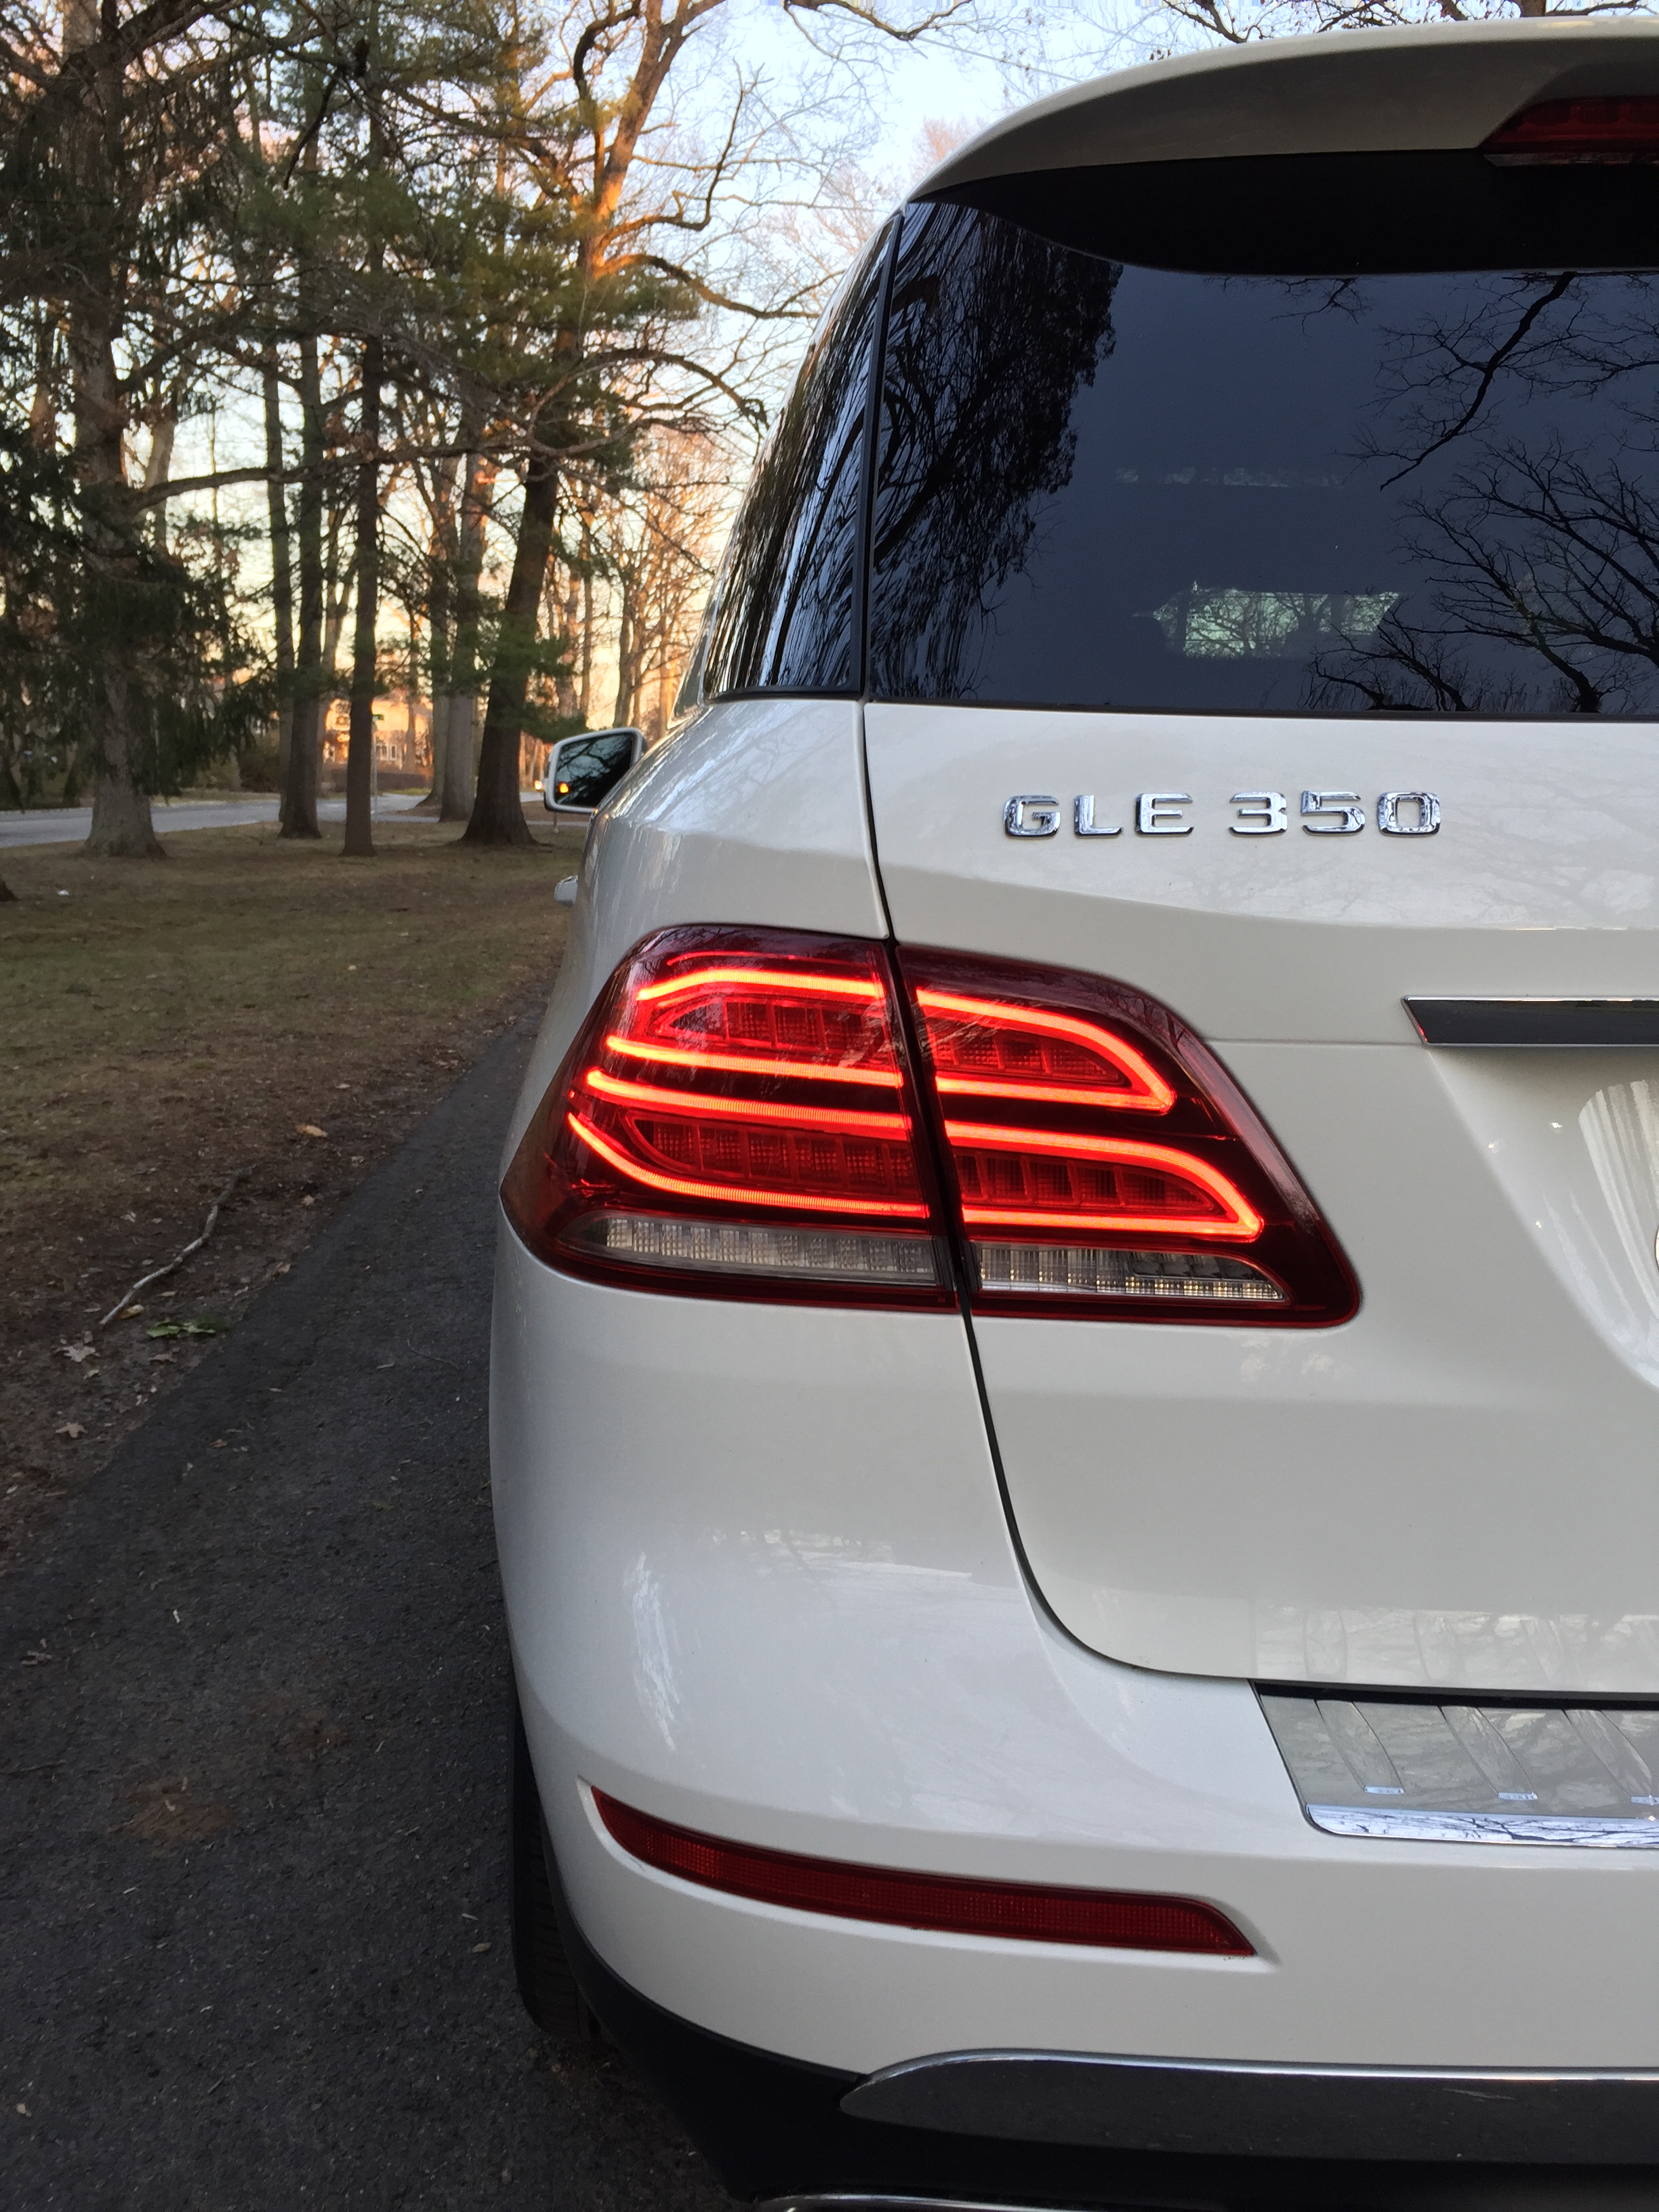 REVIEW: 2016 Mercedes-Benz GLE350 4MATIC | The Autocracy